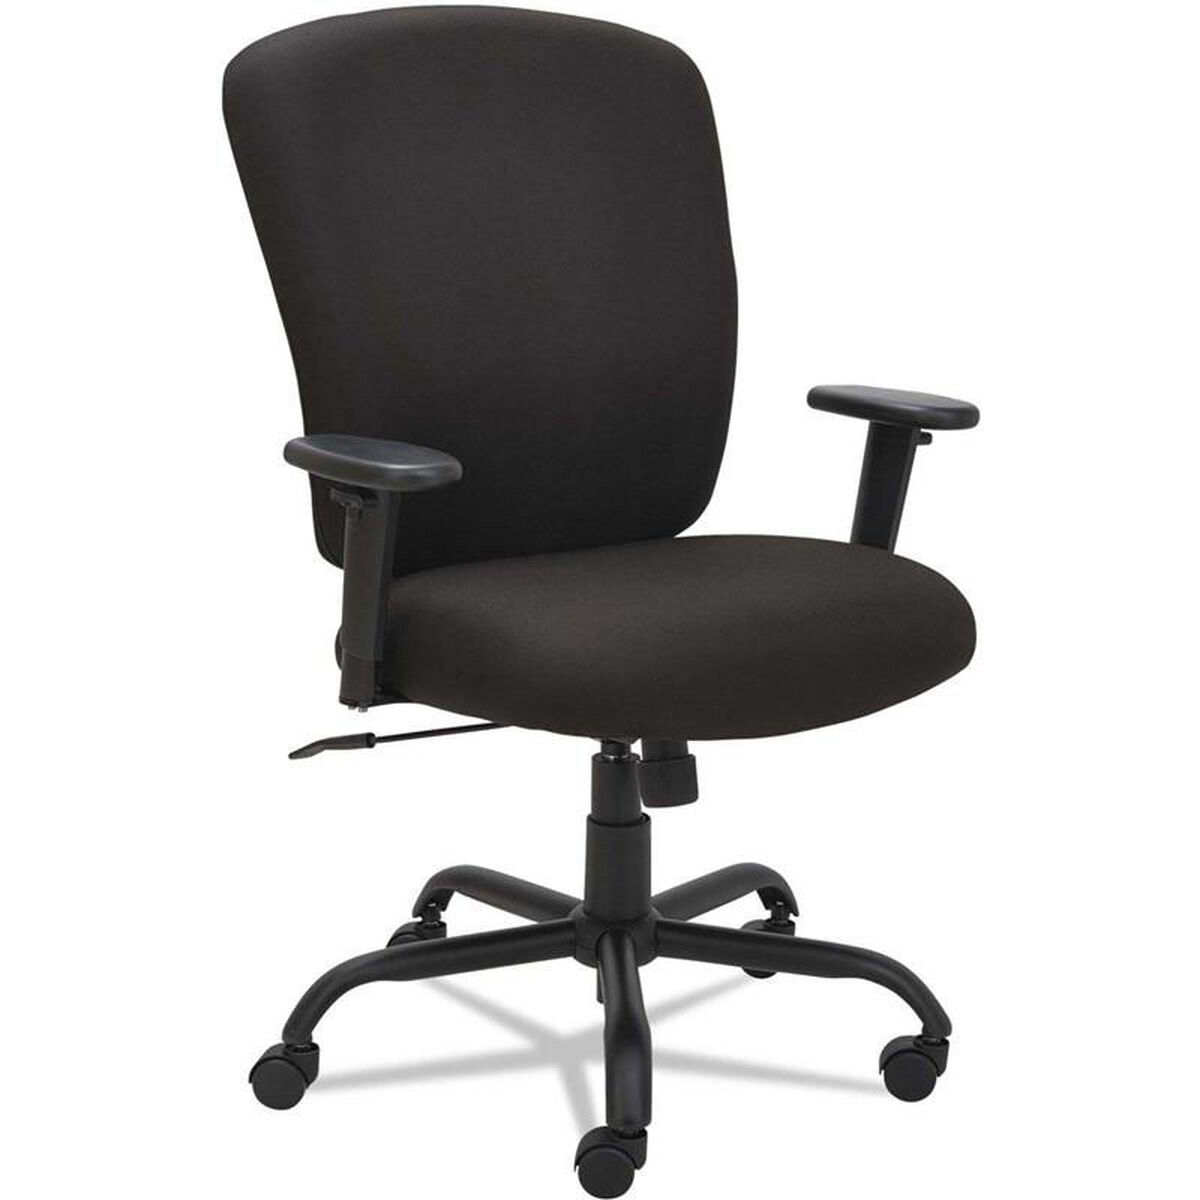 Big and Tall Office Chair Black ALEMT4510 | Bizchair.com